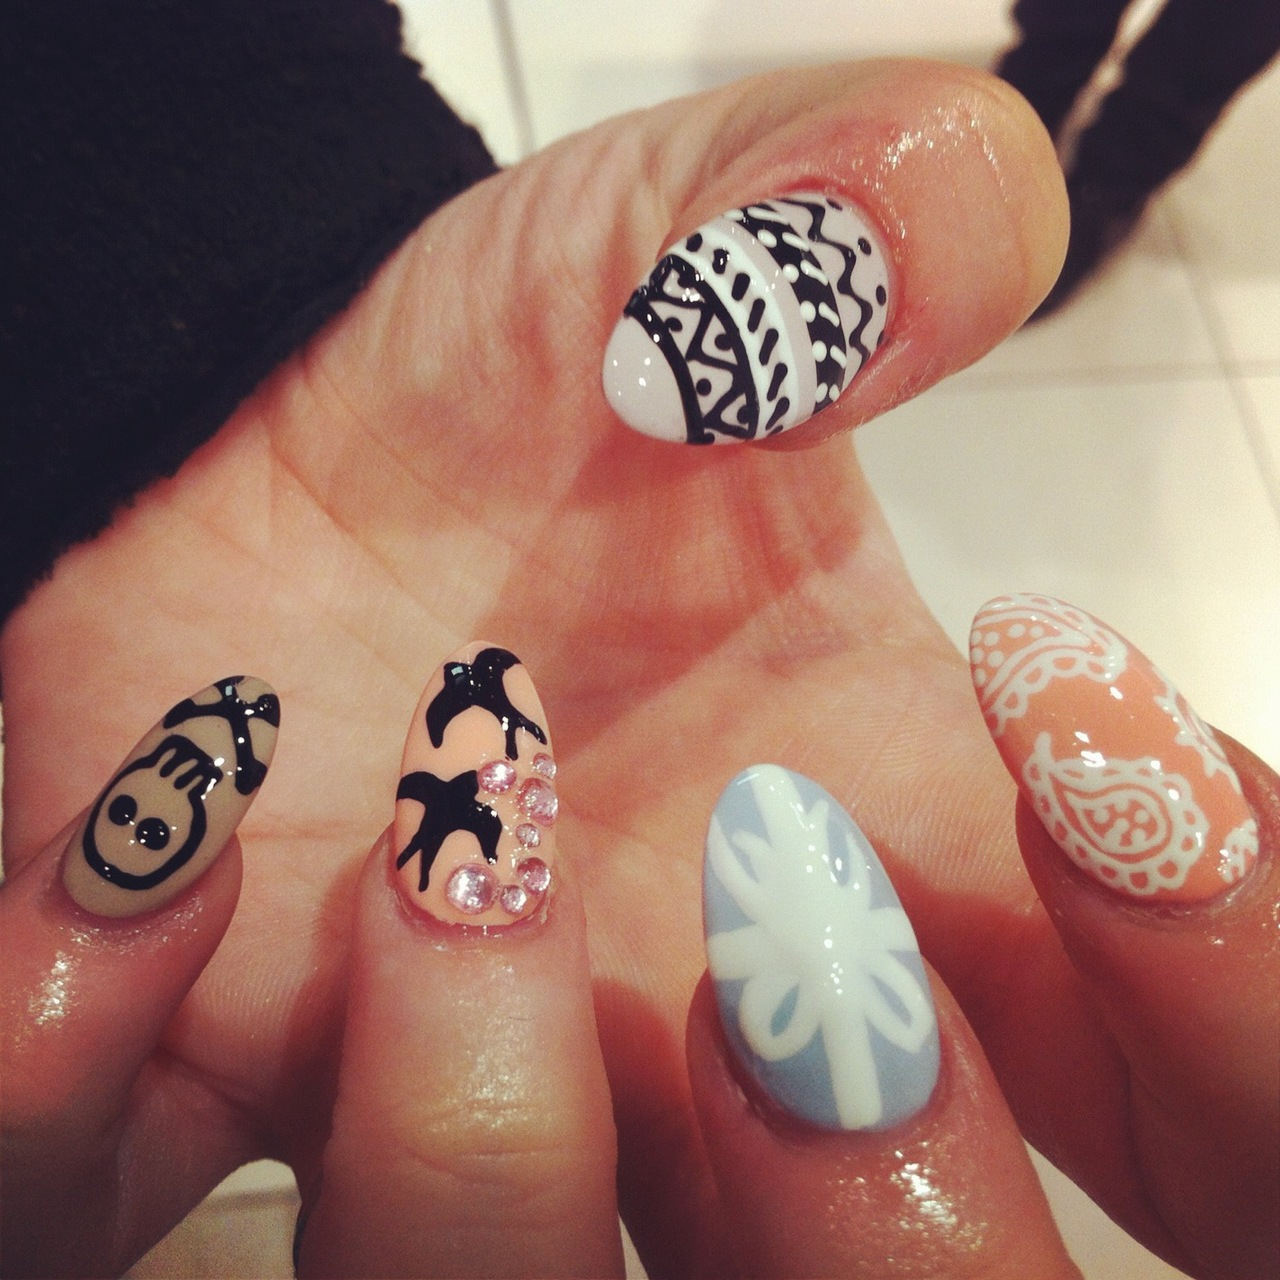 Nail Designs For Almond Shaped Nails | Best Nail Designs 2018